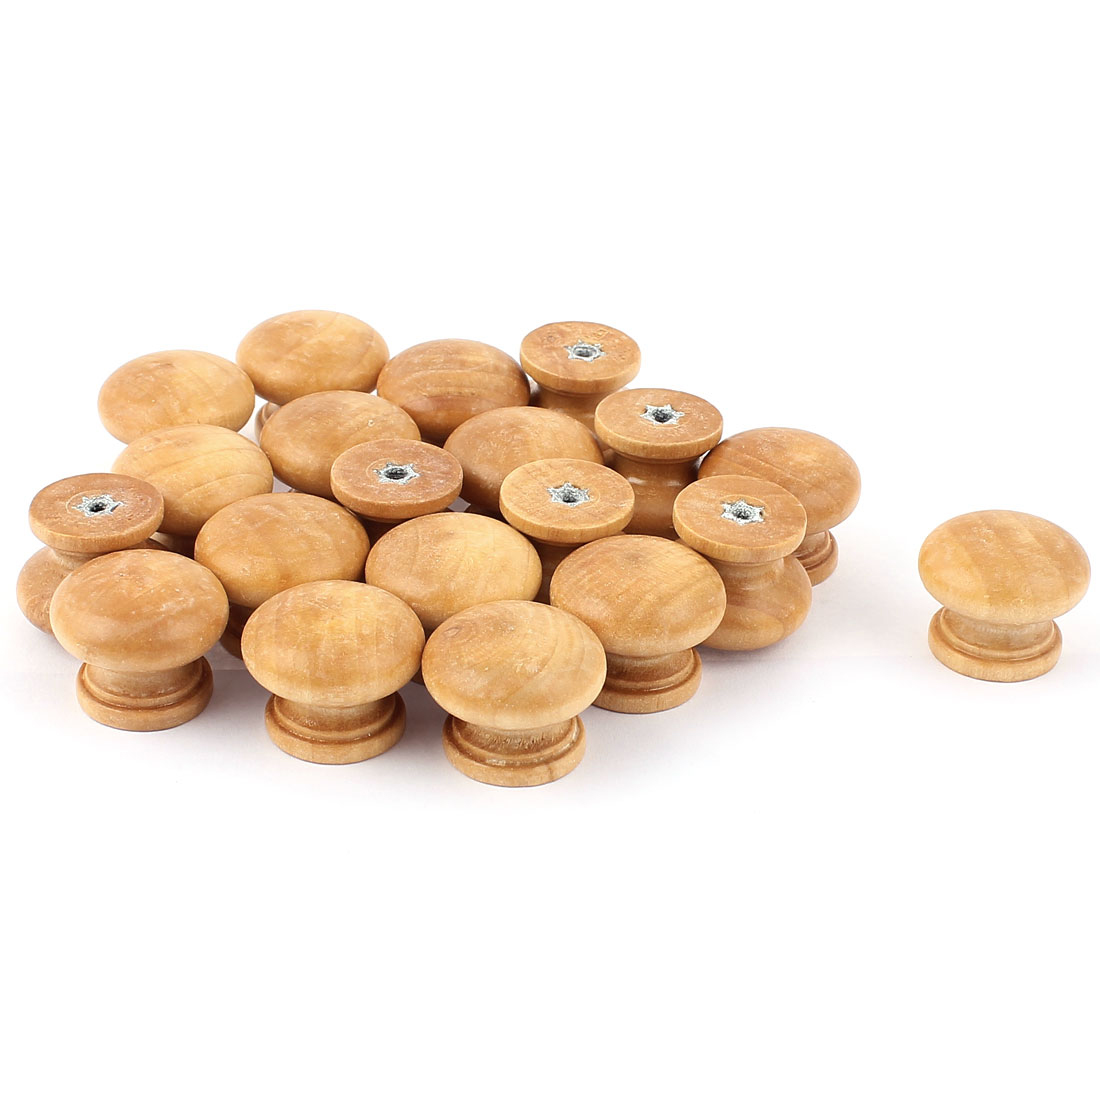 Cupboard Kitchen Cabinet Door Round Wooden Pull Knob Handles 27mm 20 Pcs Khaki